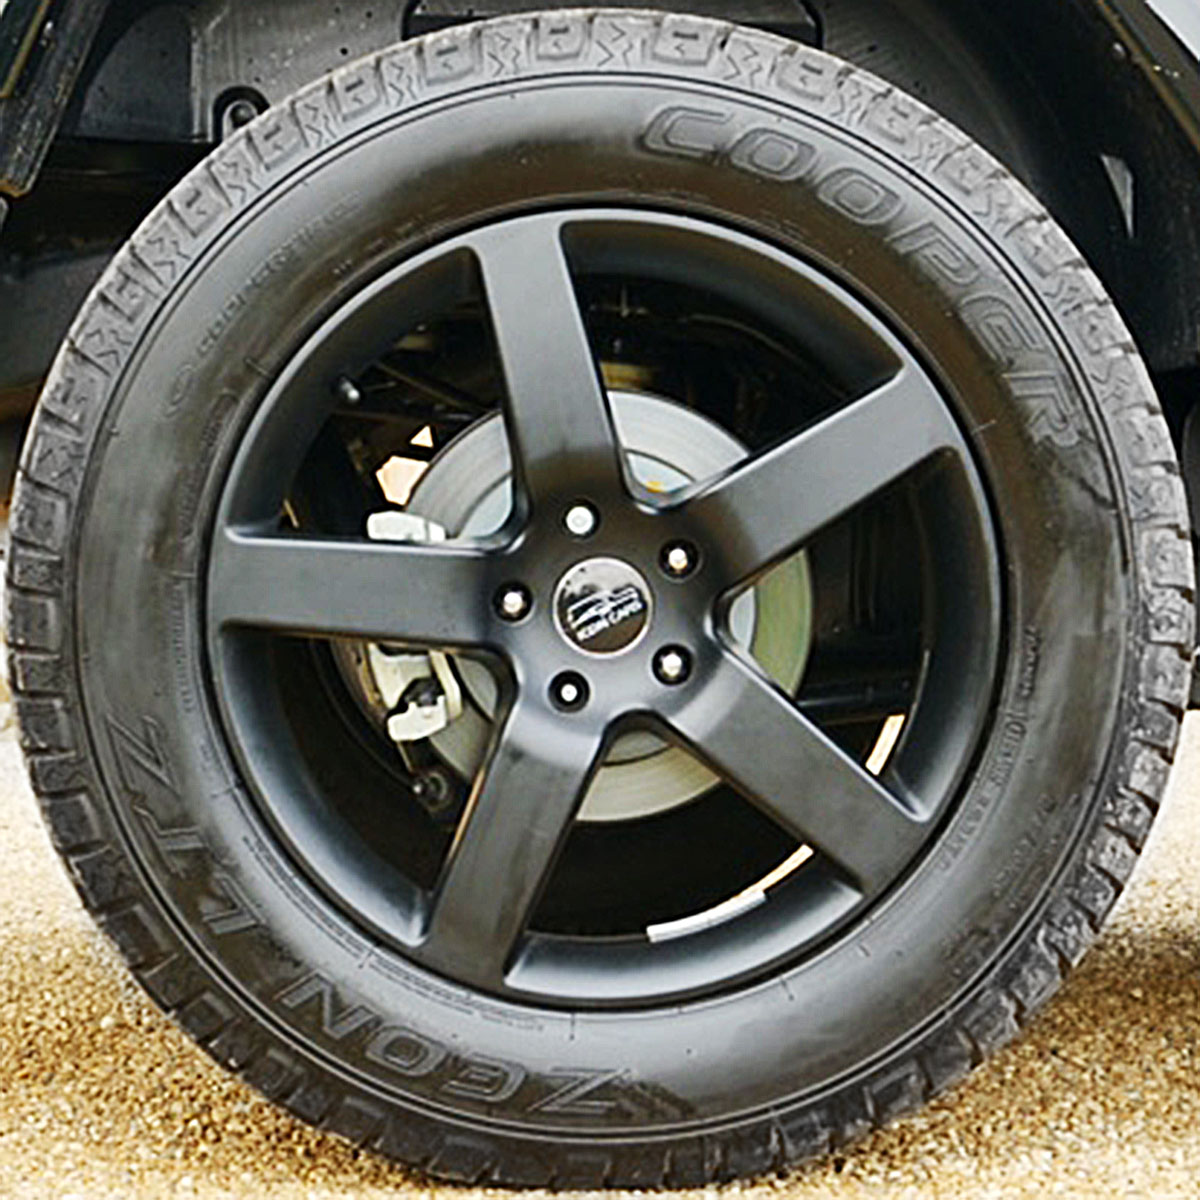 Wild Wrangler 5 Spoke Alloy